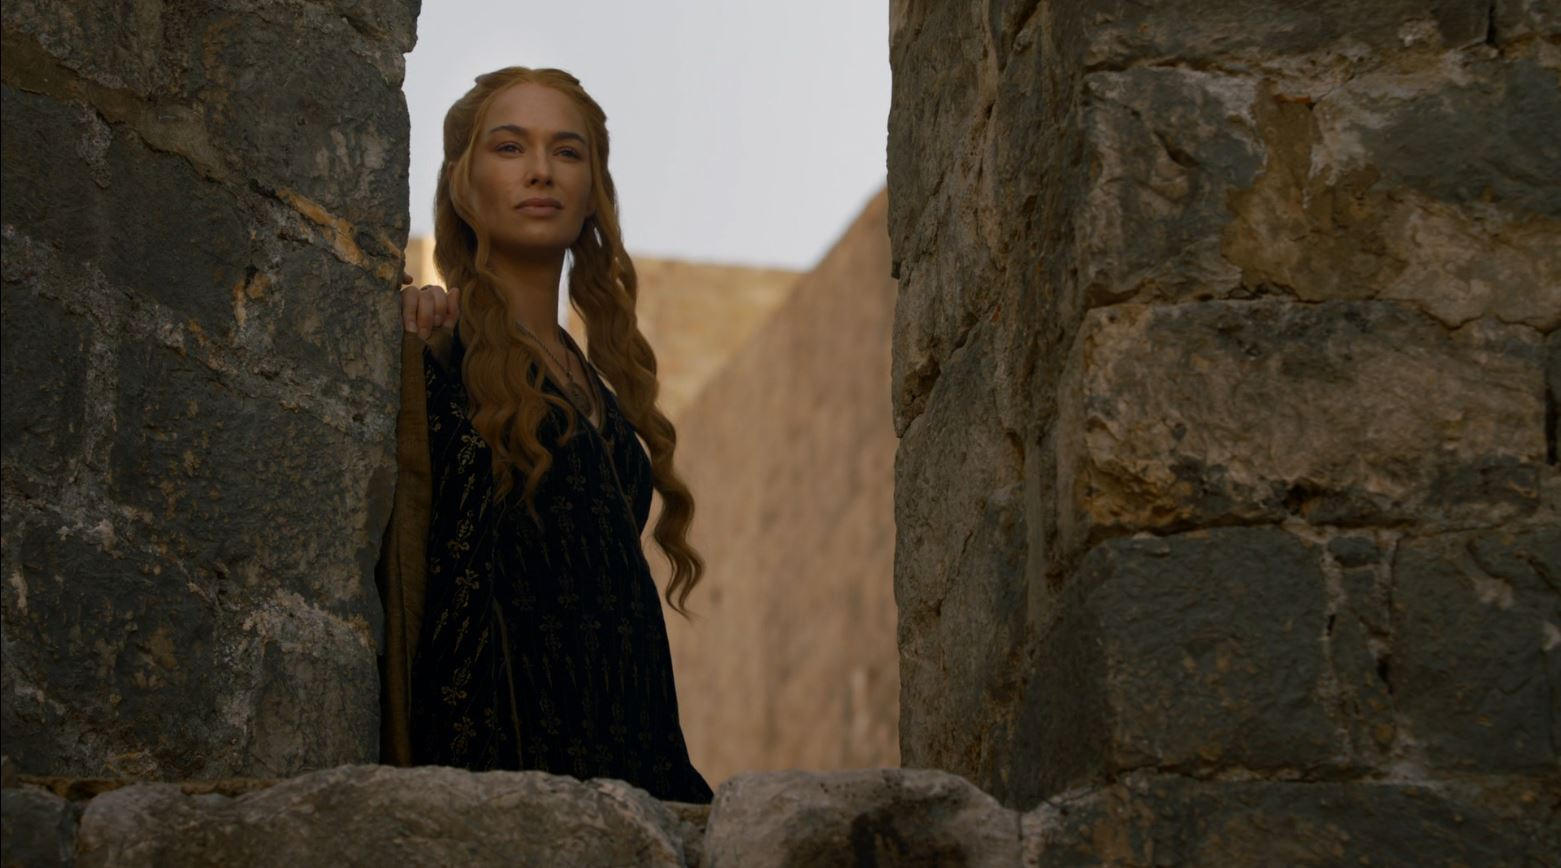 Game Of Thrones S4Ep7 Mockingbird Review - Lena Headey as Queen Cersei Lannister looking at the mountain